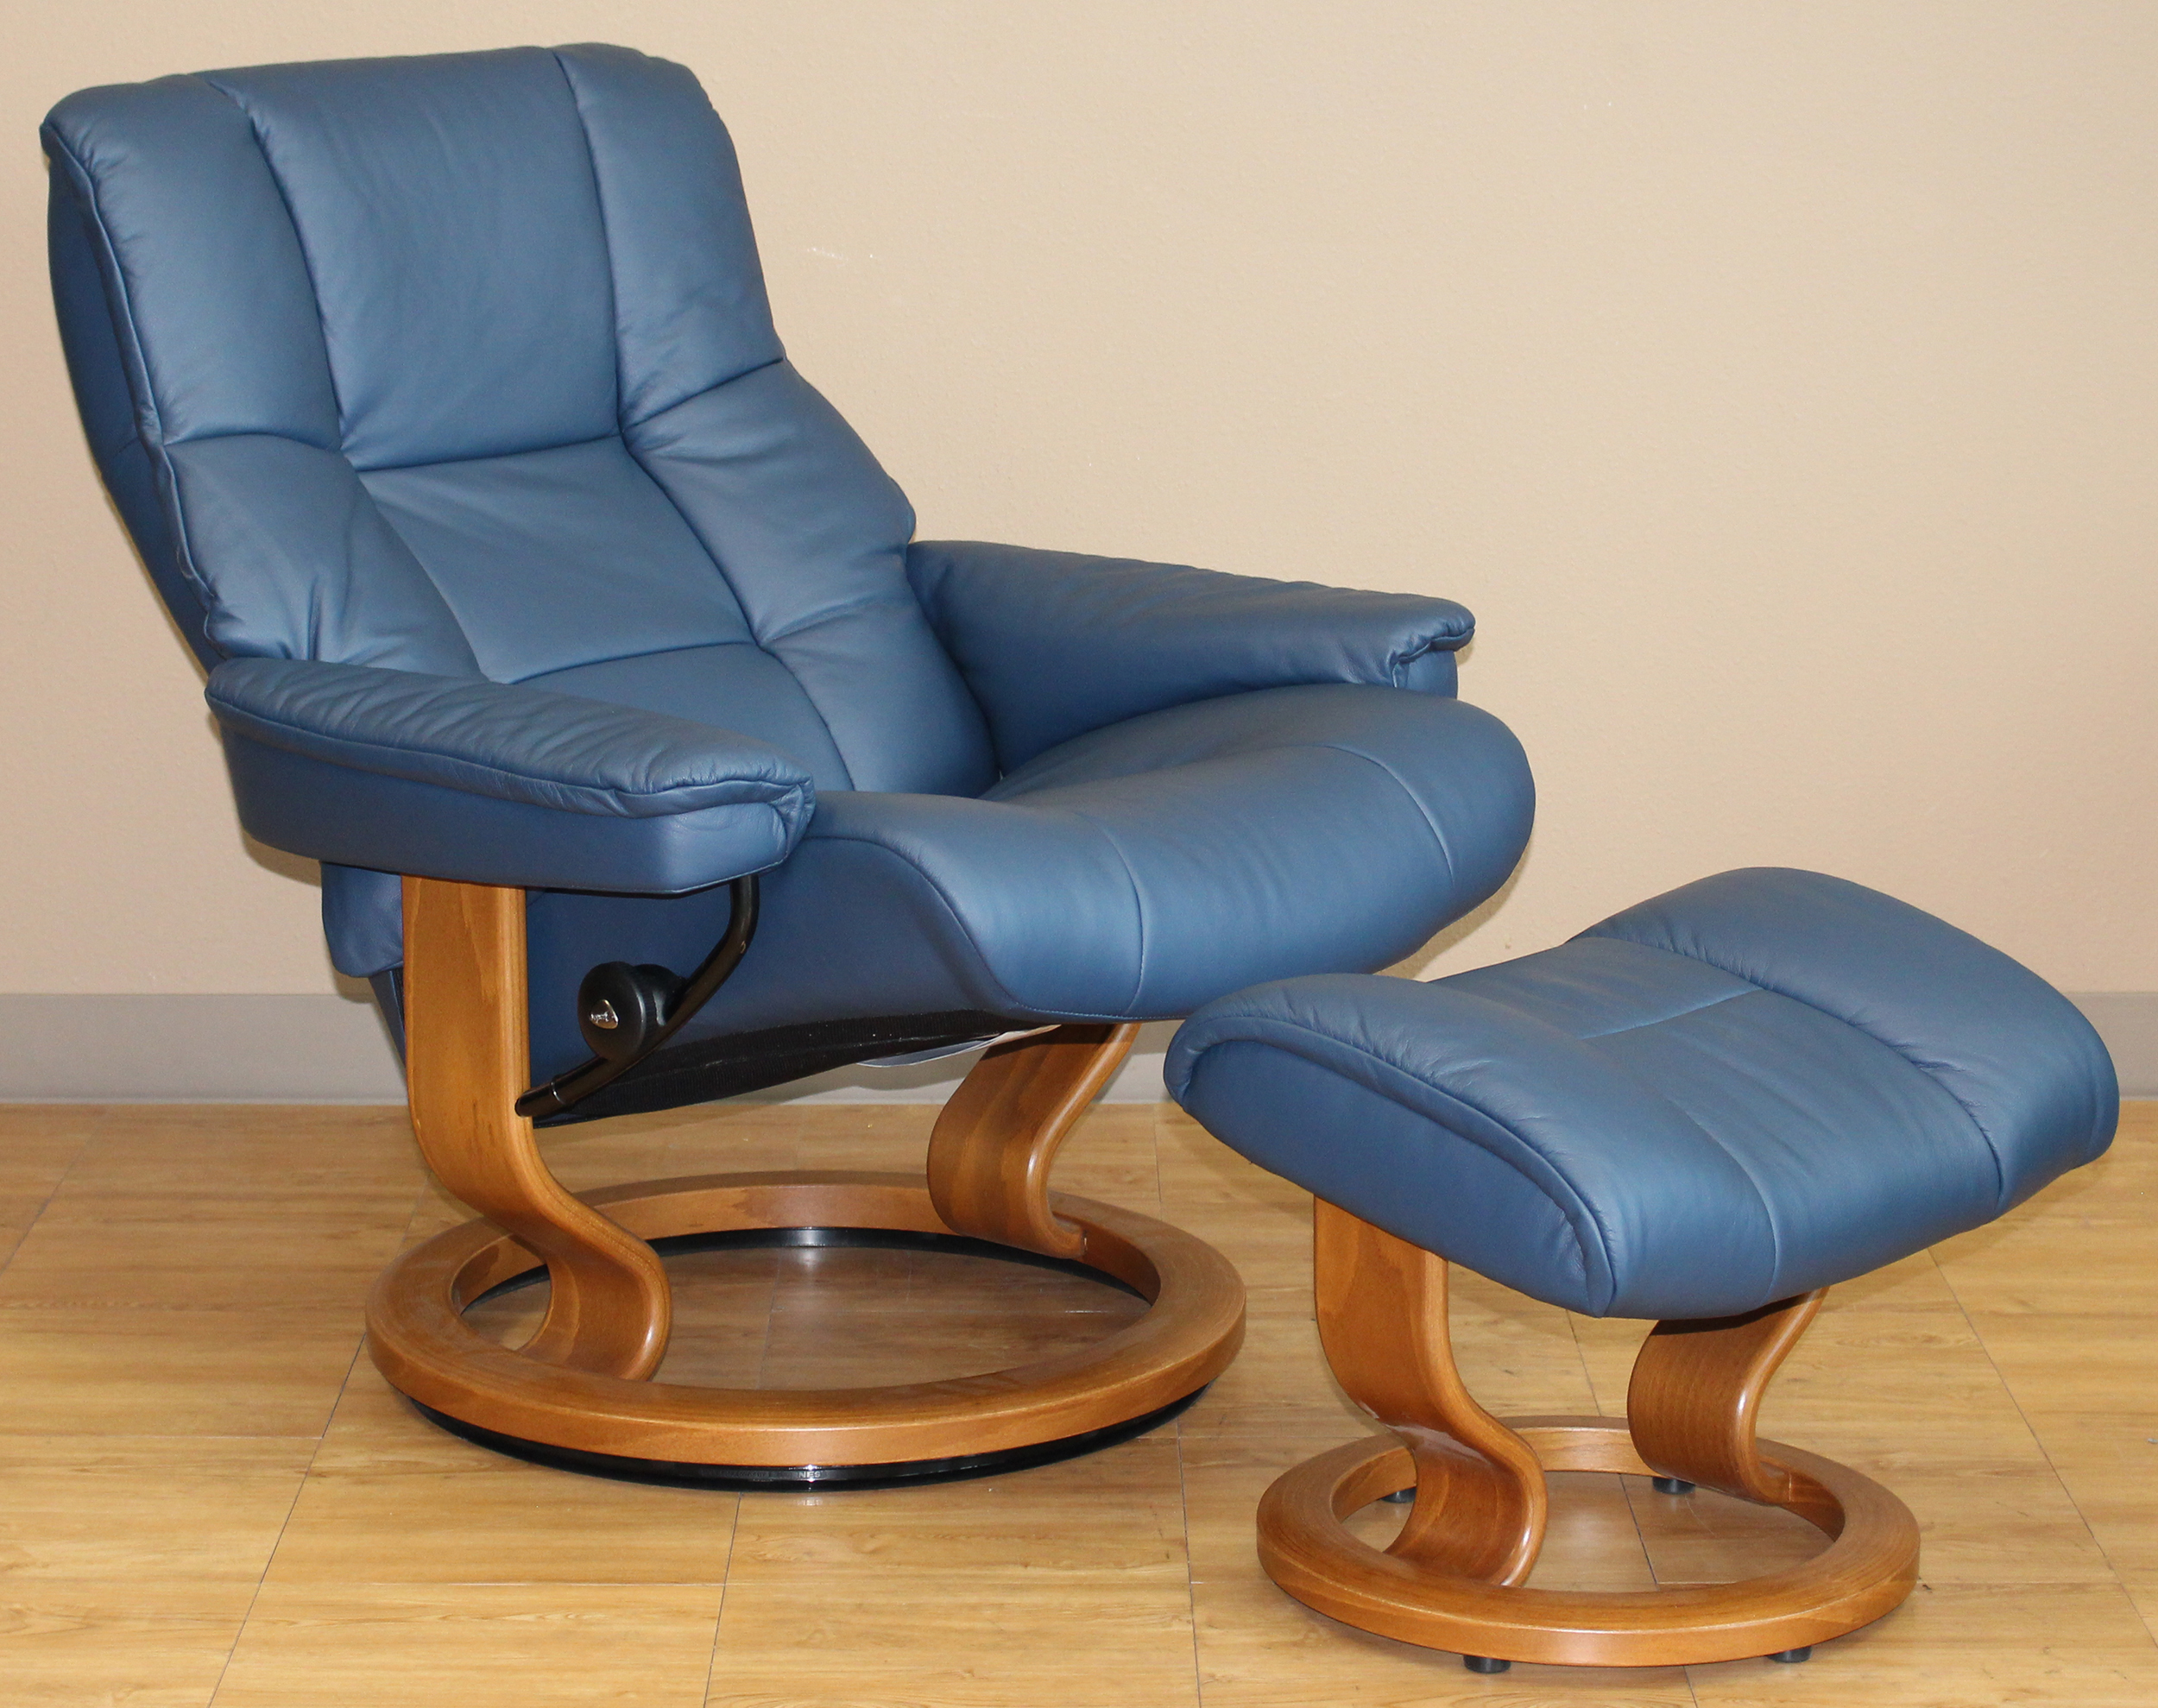 Delicieux Stressless Kensington Large Mayfair Paloma Oxford Blue Leather Recliner  Chair By Ekornes